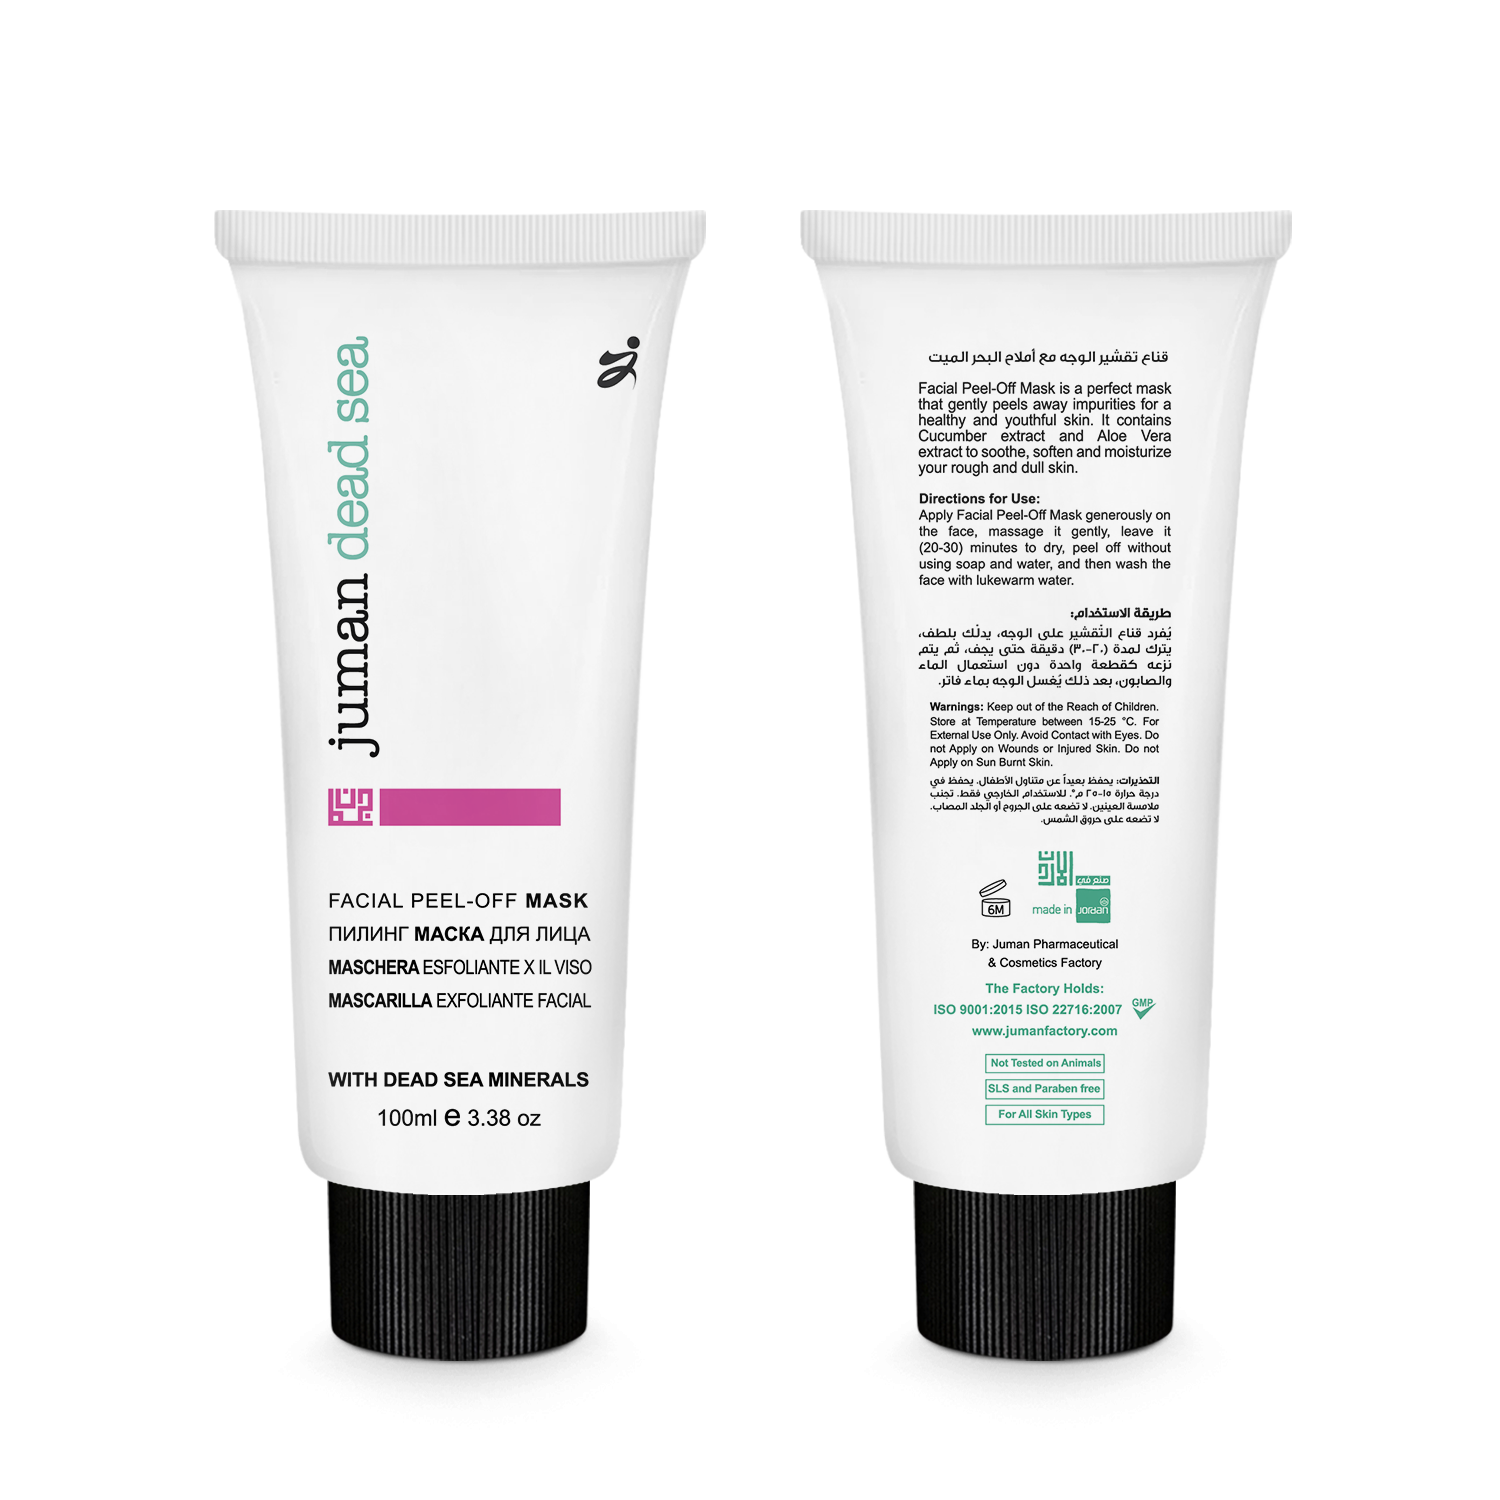 Buy Facial Peel-Off Mask with Dead Sea Minerals